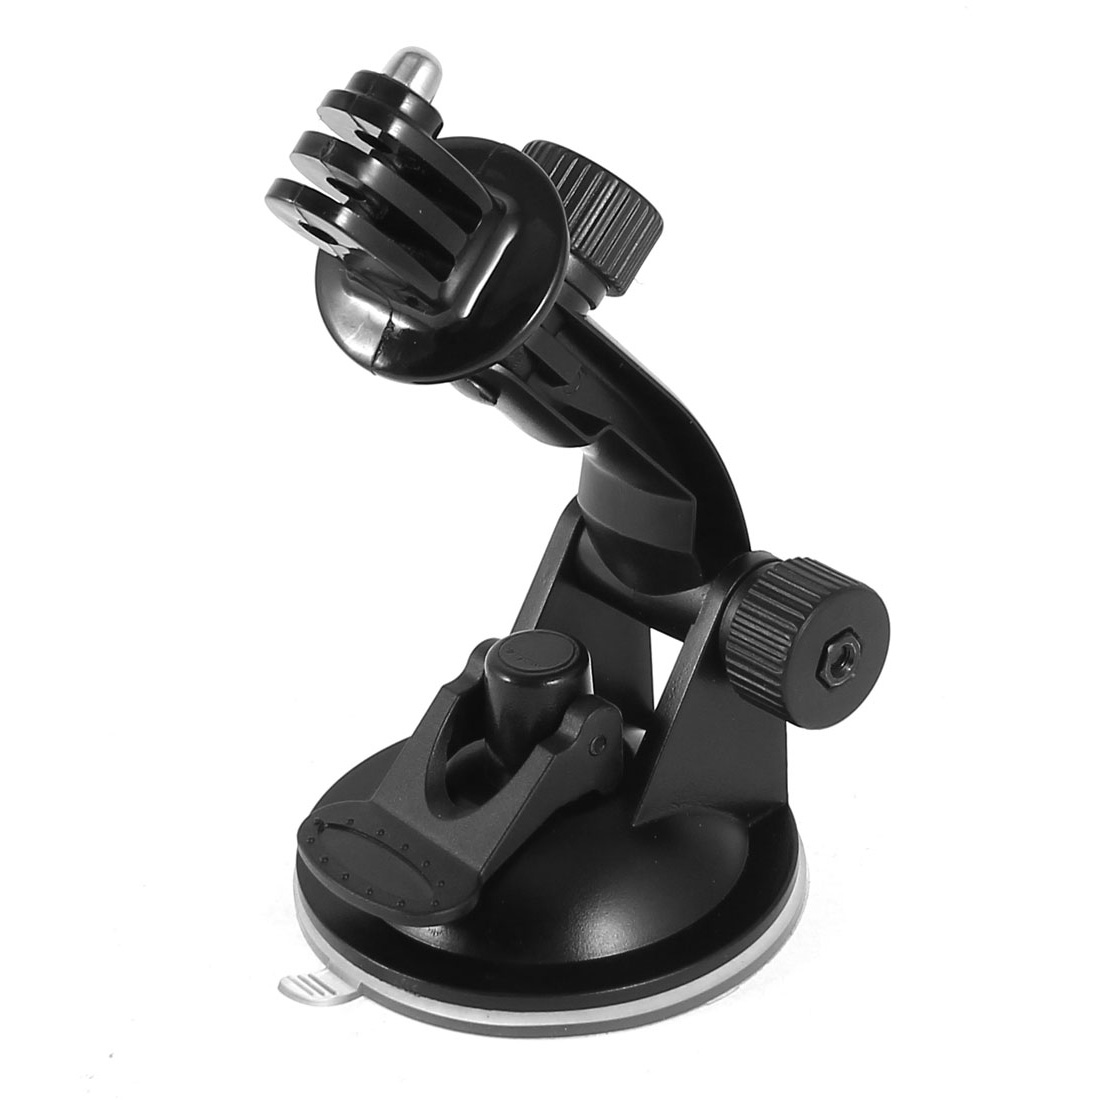 Car Windshield Vacuum Suction Cup Mount + Tripod Adapter Black for GoPro HERO 1 2 3